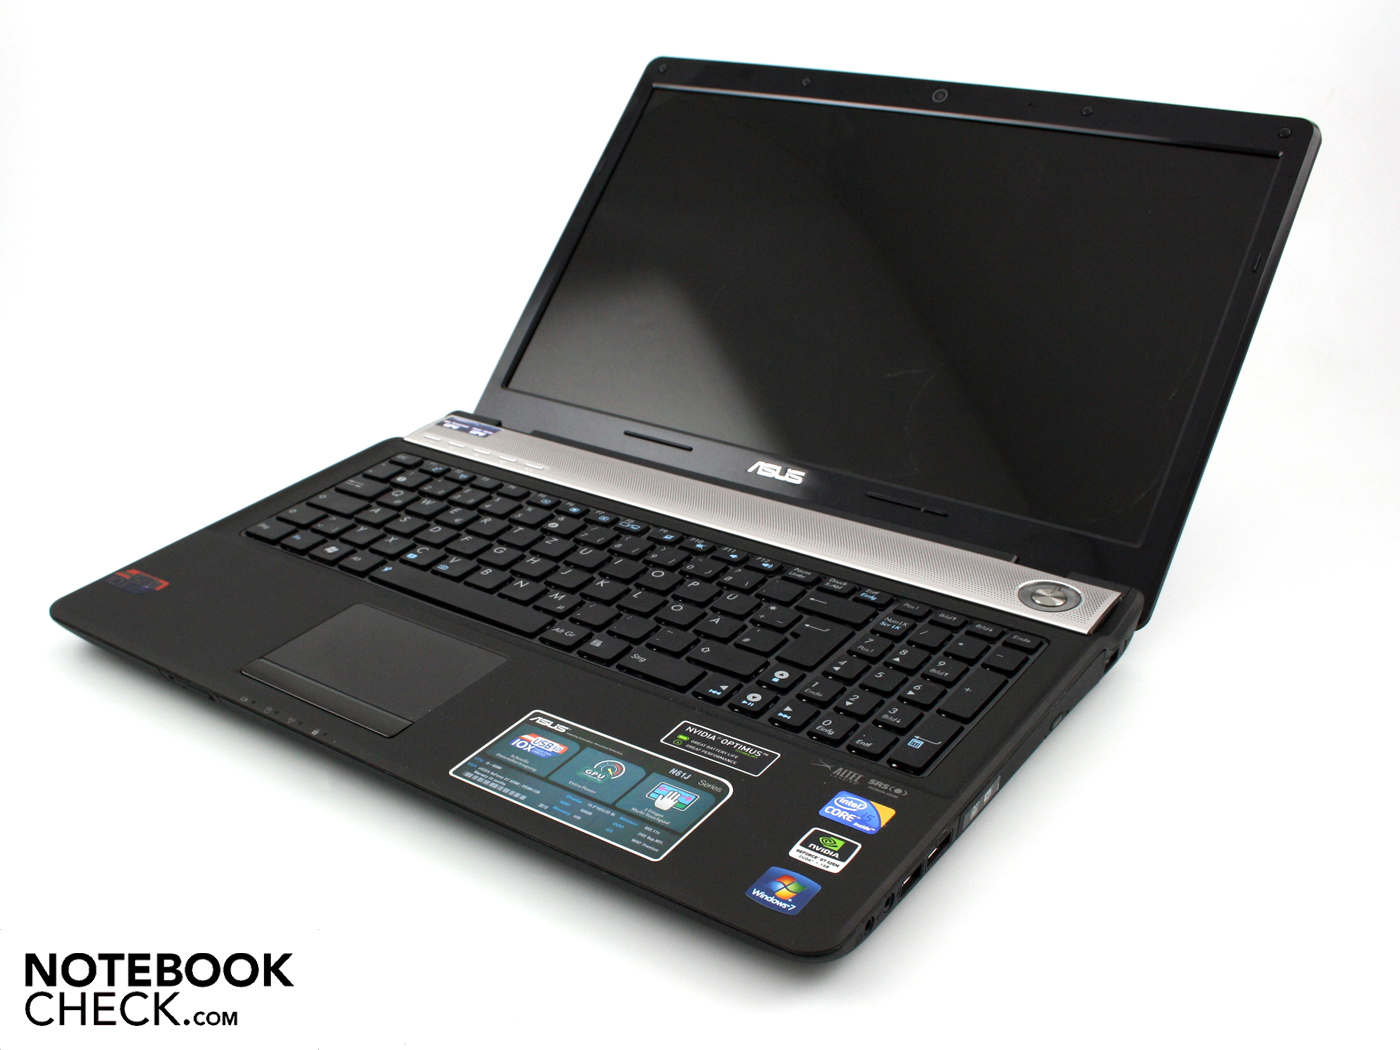 Download Driver: Asus N61Jv Notebook Power4Gear Hybrid